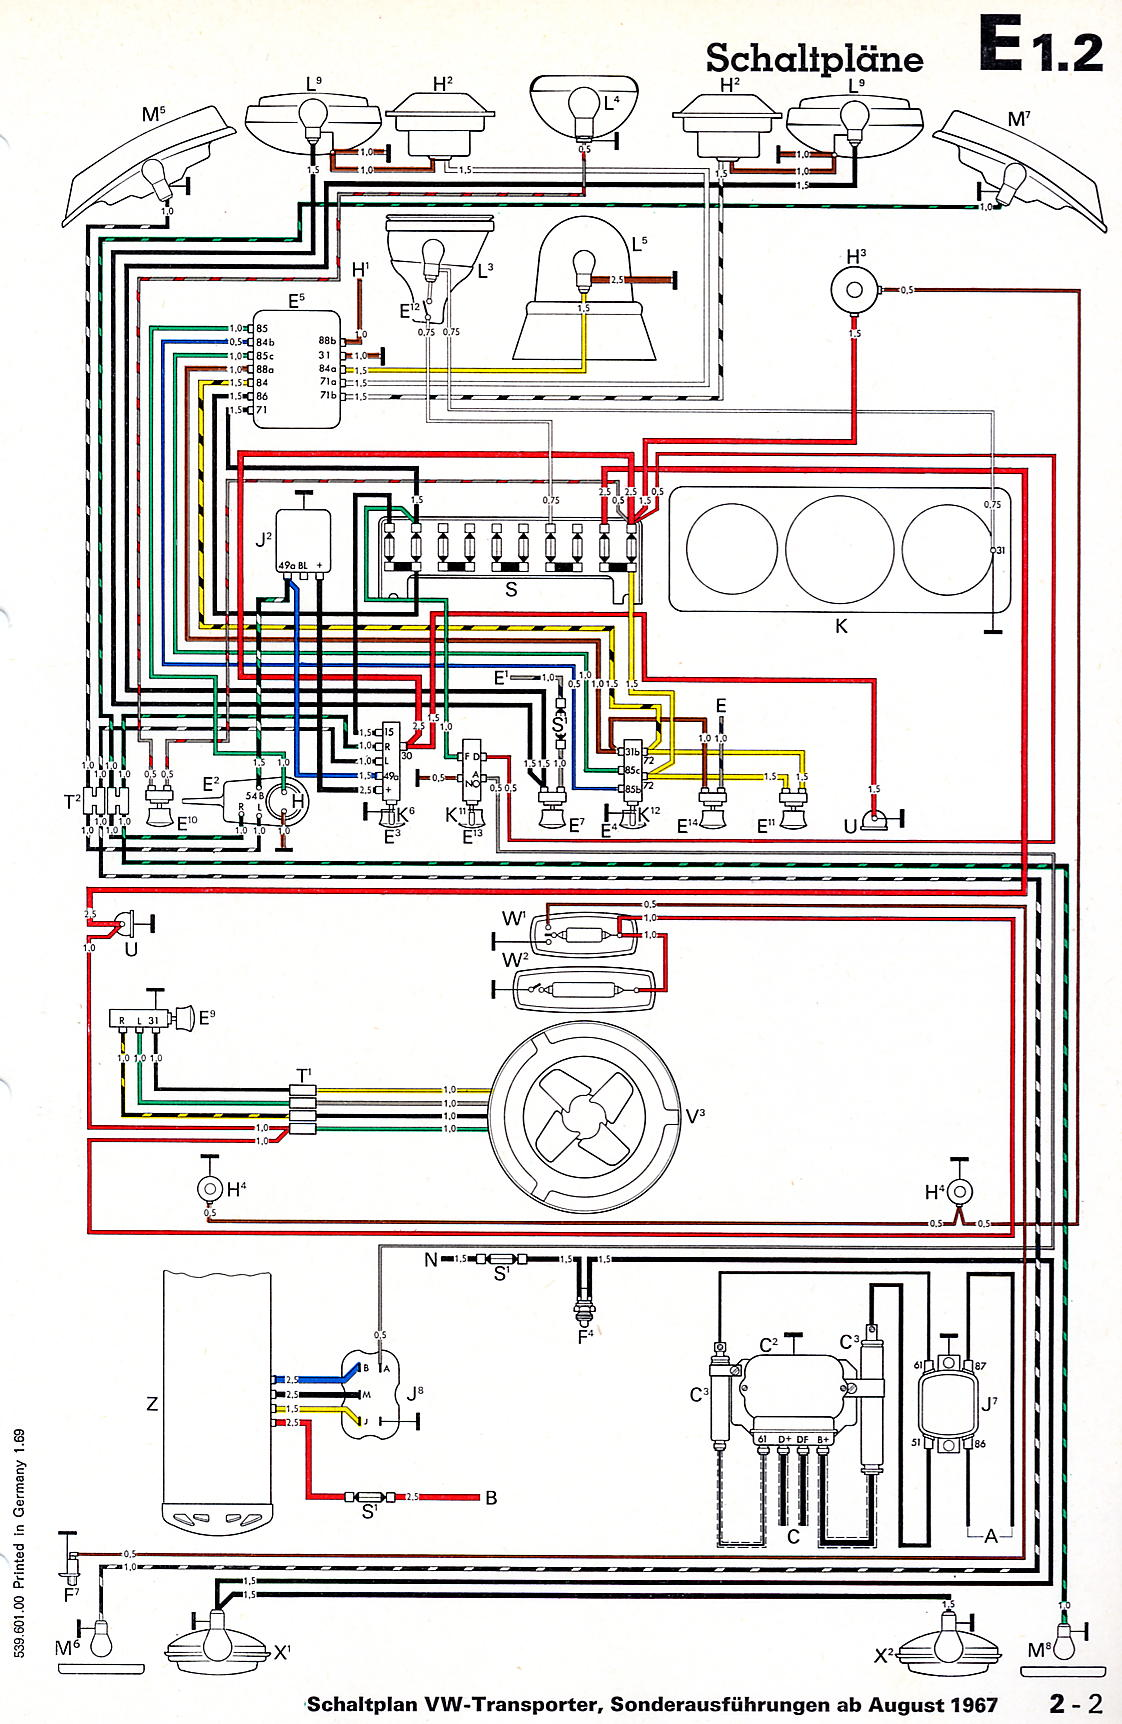 Vanagon Alternator 213 8155 Wiring Diagram Sprinter Diagrams For Alternators All Diagramvanagon